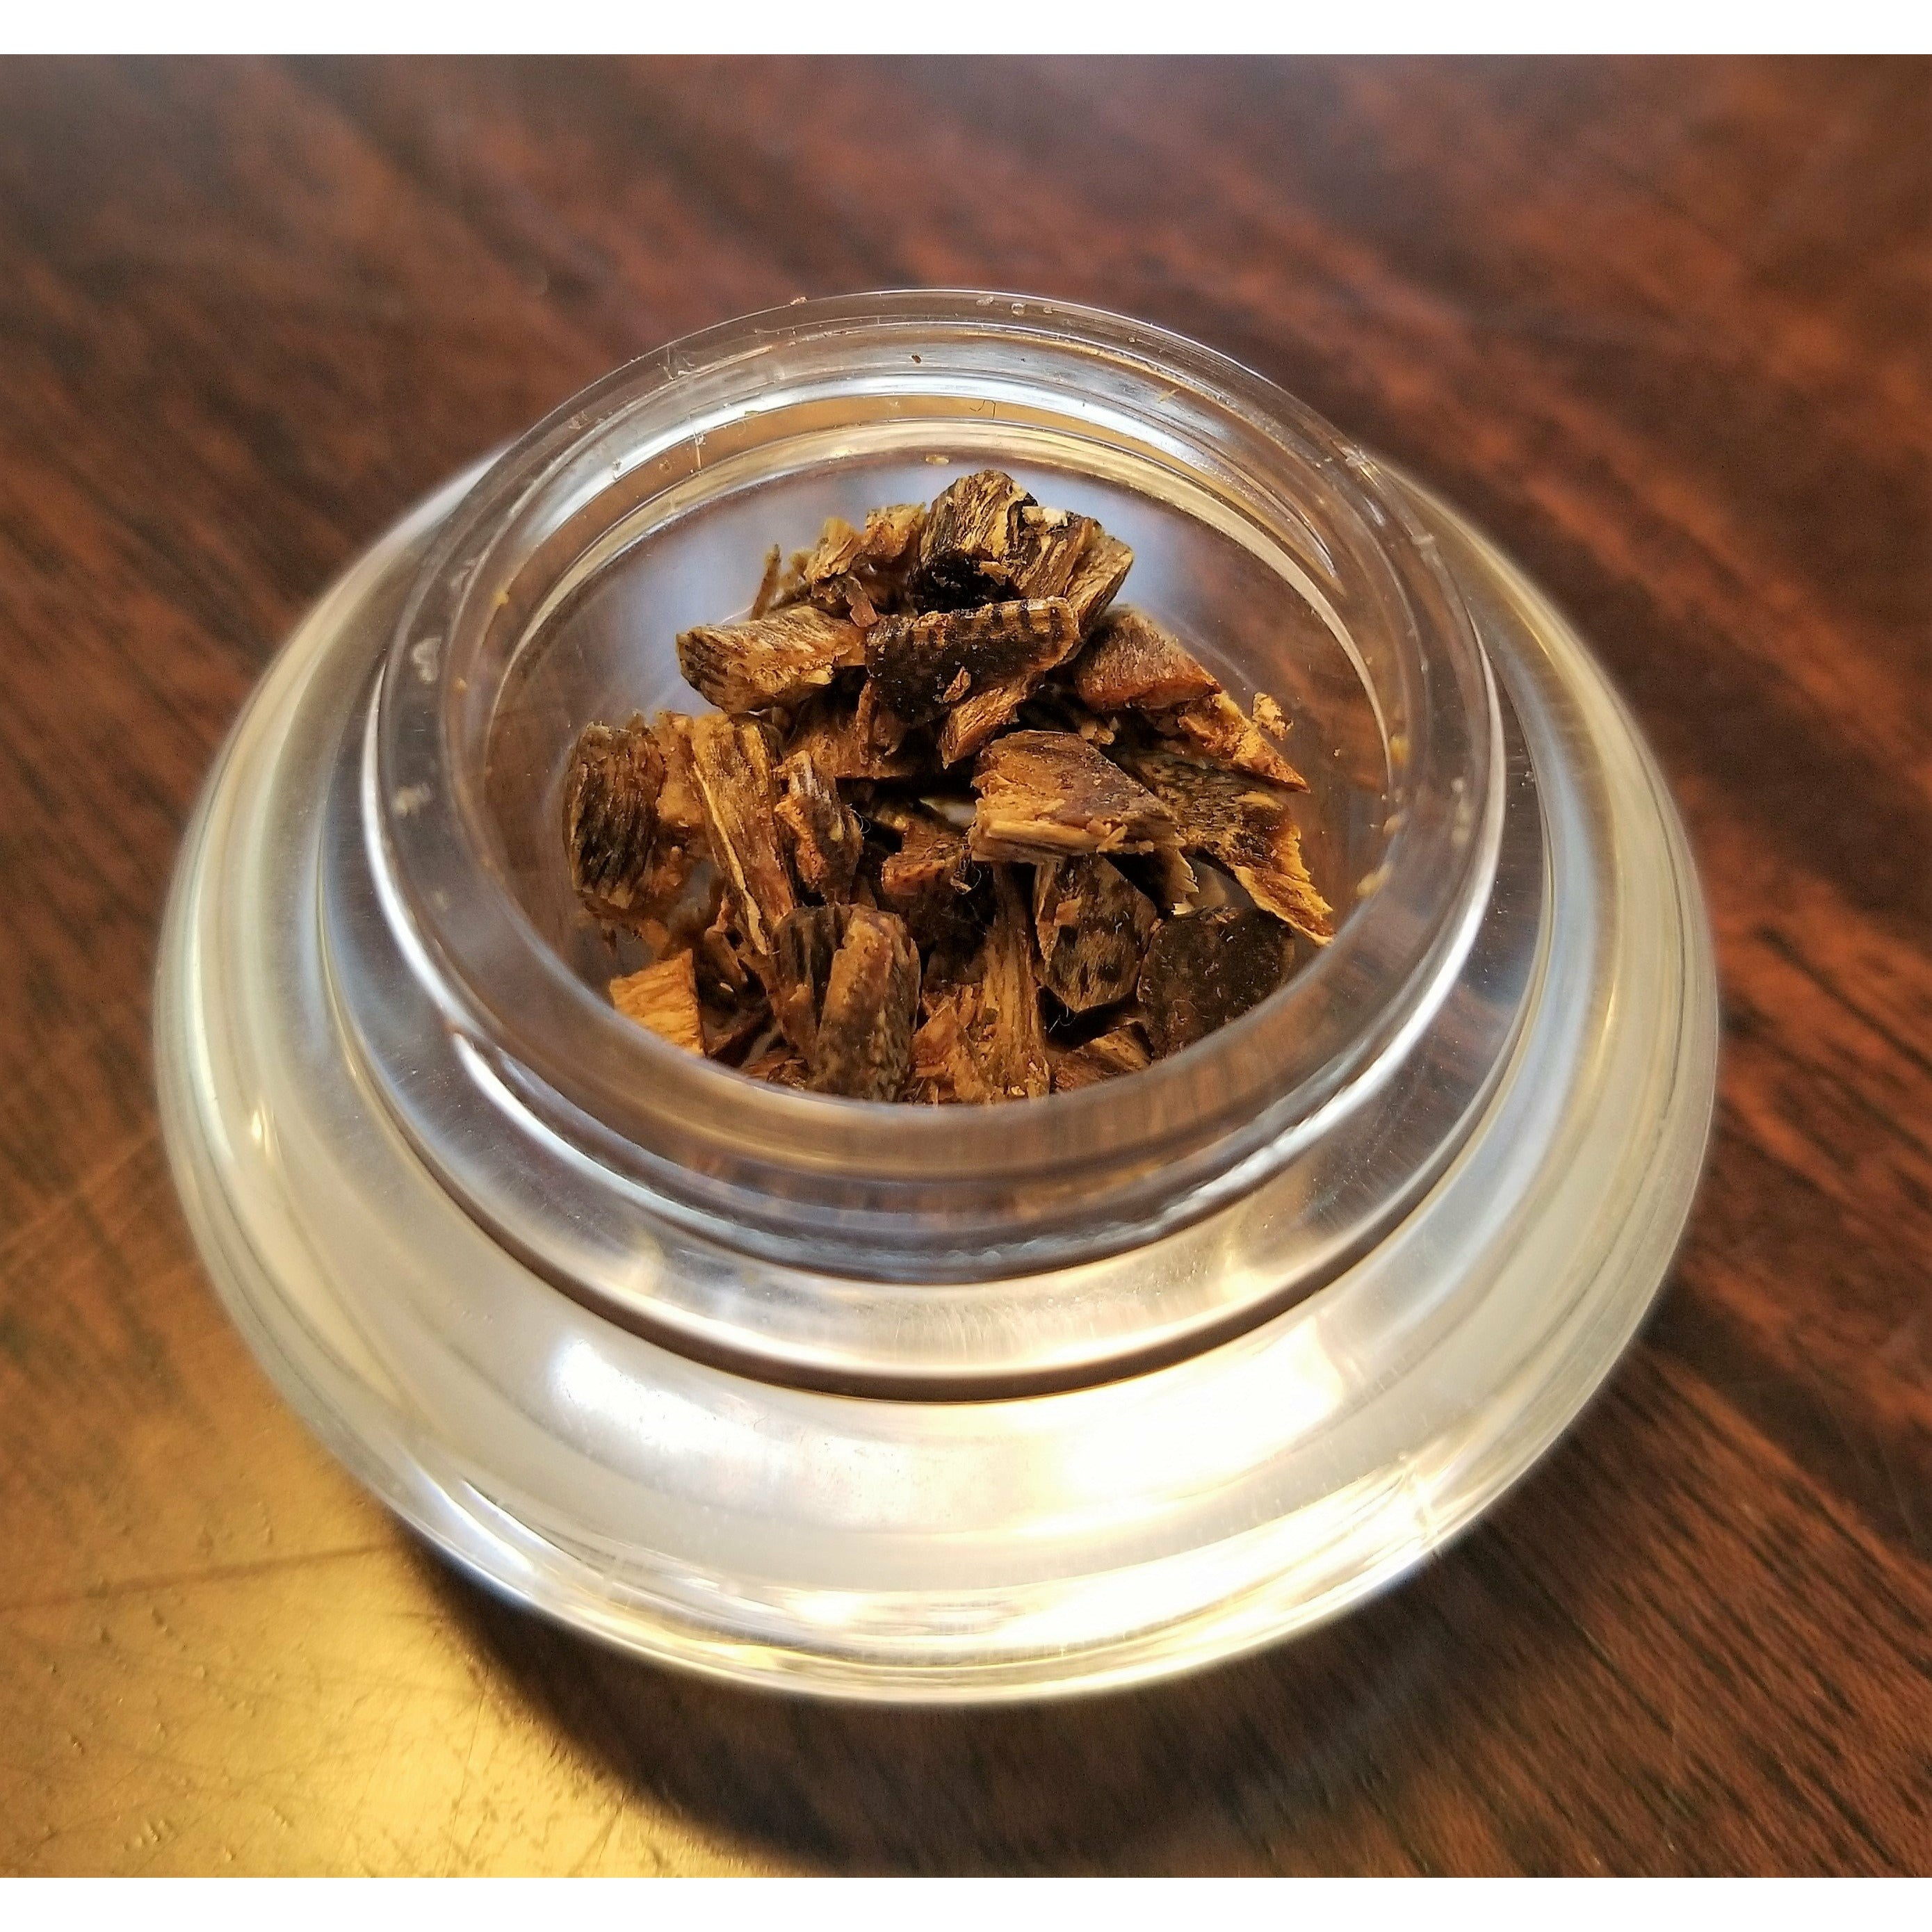 Chinese Kinam / Kyara incense - wood chips - theperfumist - the house of the perfumist - royal attar